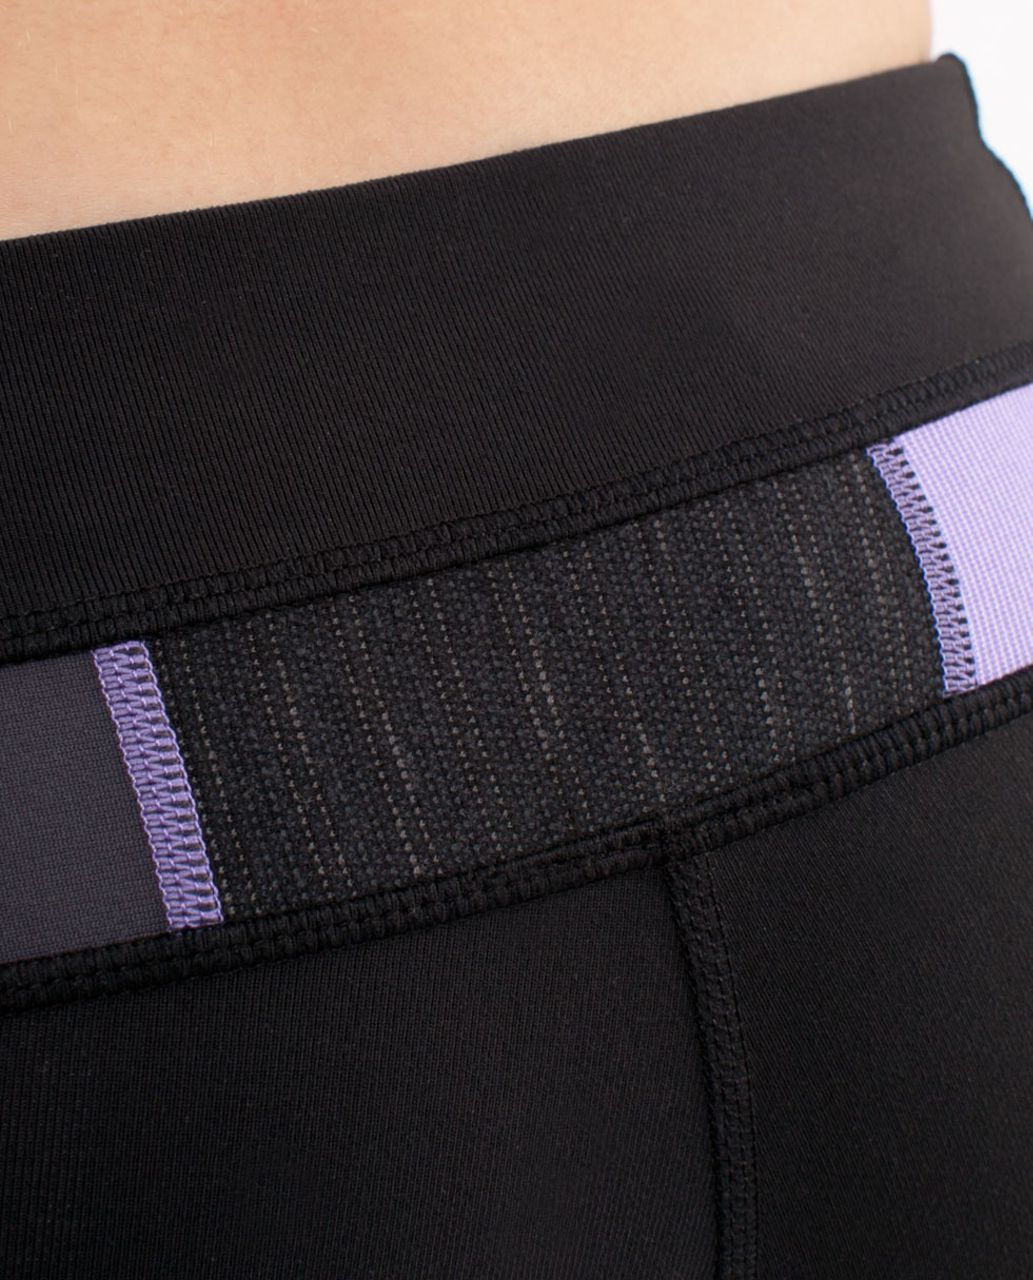 Lululemon Groove Pant (Regular) - Black /  Winter Quilt Iii